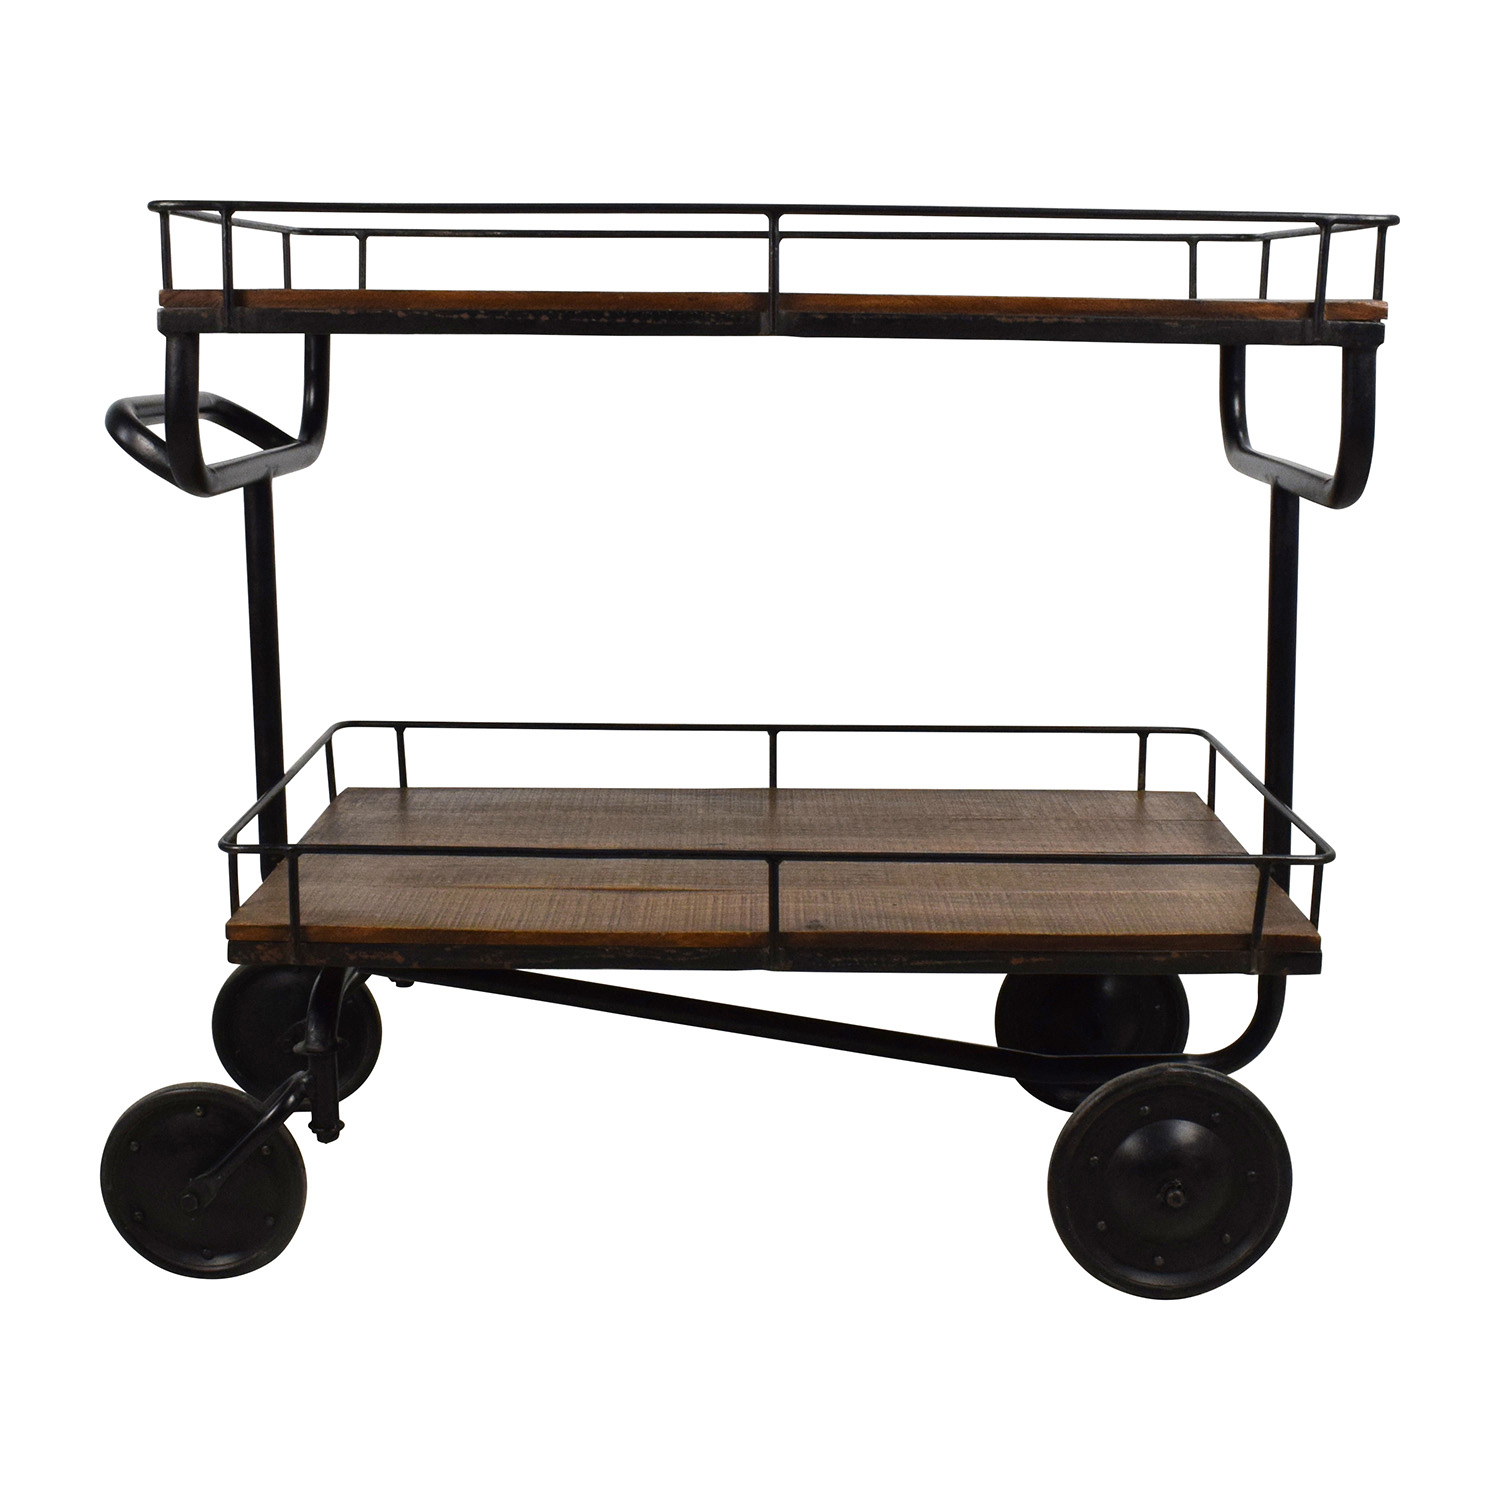 Restoration Hardware Restoration Hardware Warehouse Trolly Bar Cart dimensions